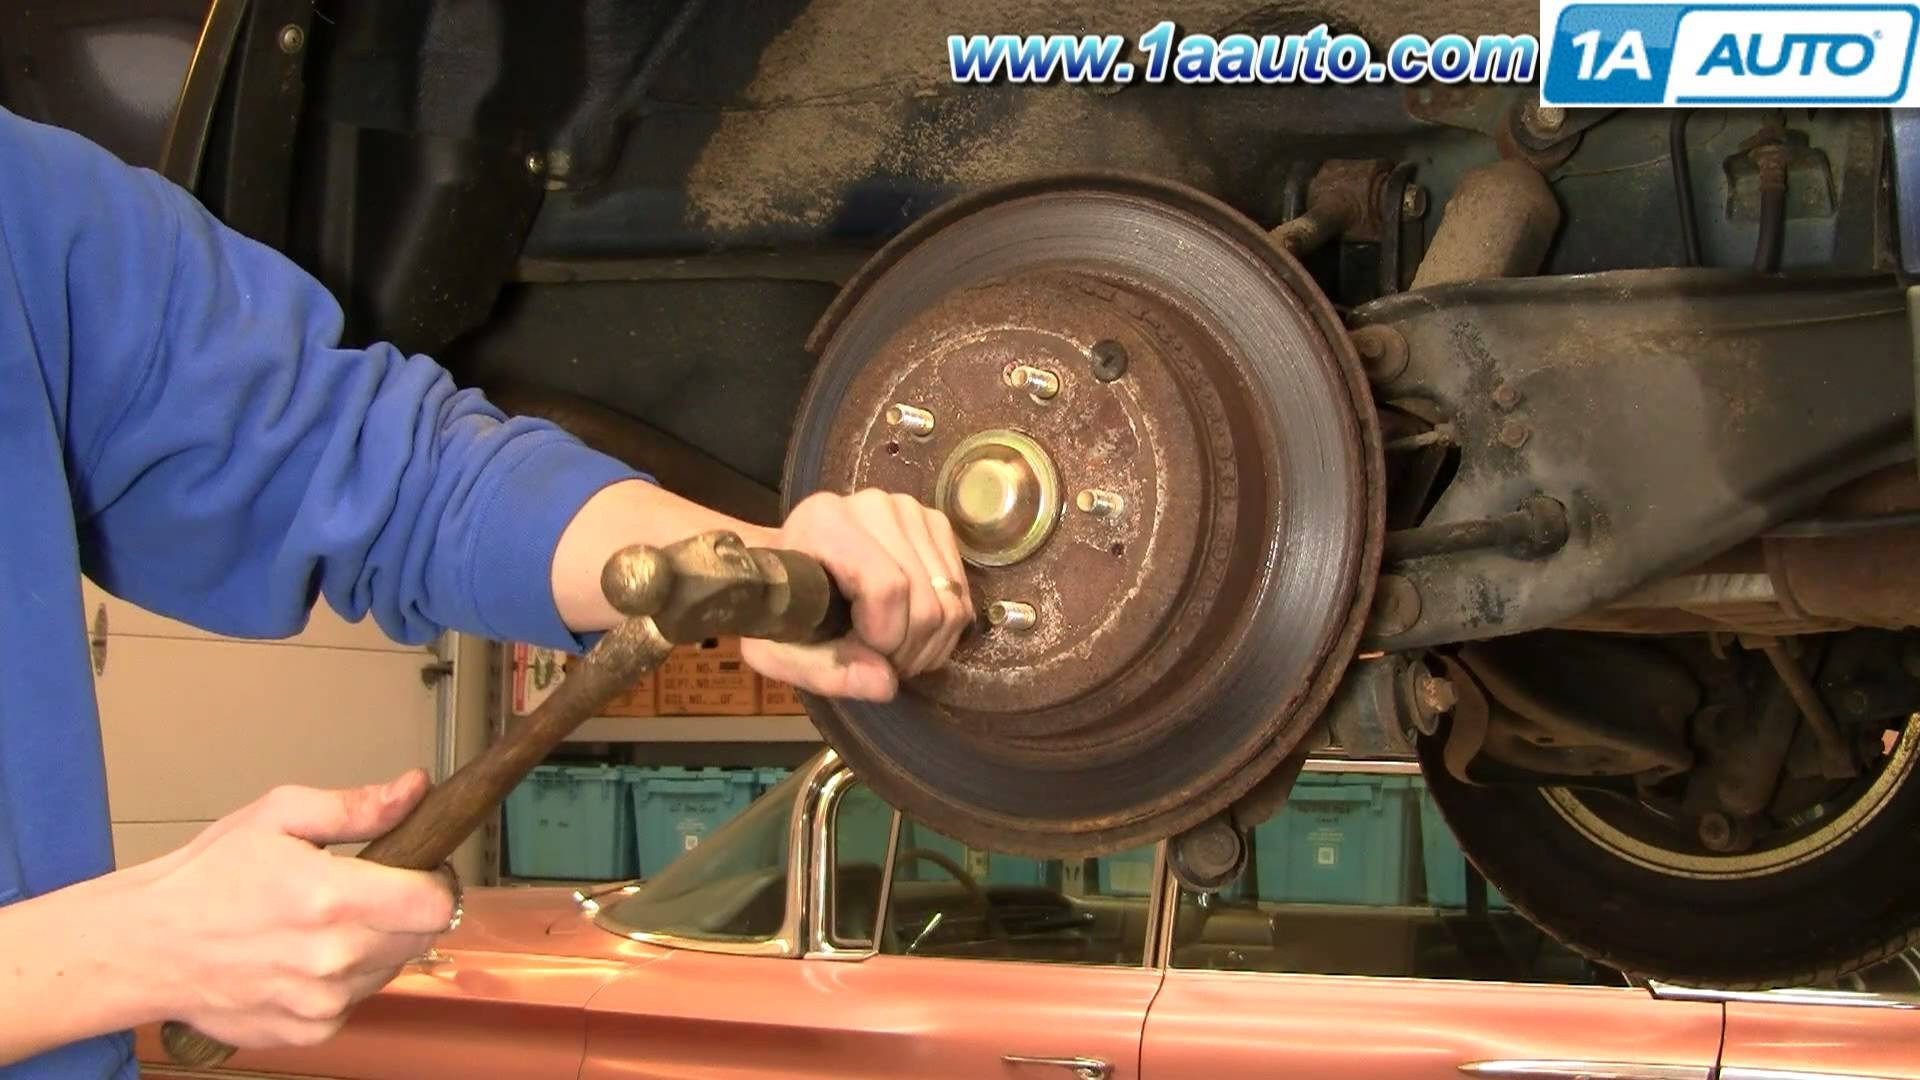 Rear Brake Shoes Diagram How to Install Replace Rear Brakes Honda Odyssey 99 04 1aauto Of Rear Brake Shoes Diagram